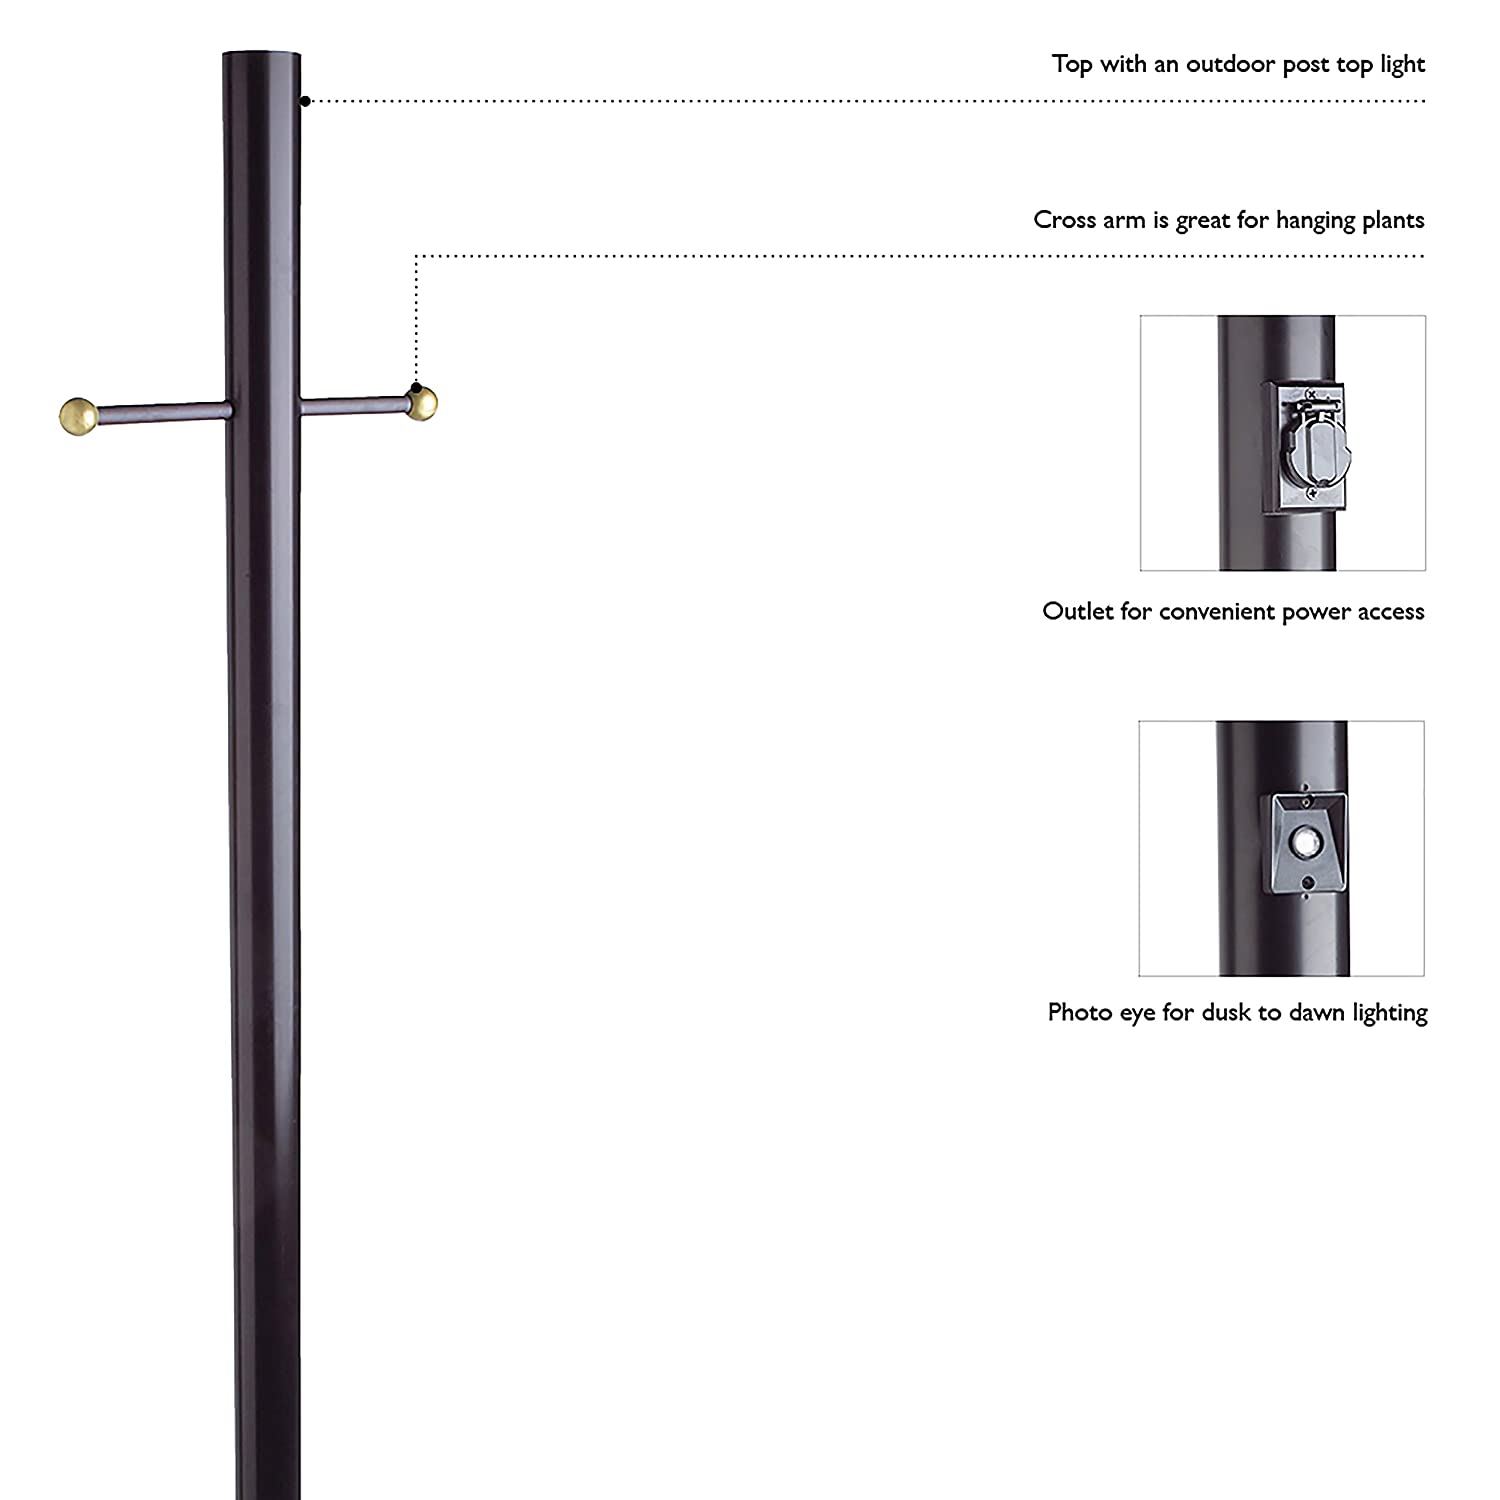 Outdoor Light Post With Outlet Amazon design house 501817 80 inch lamp post black home amazon design house 501817 80 inch lamp post black home improvement workwithnaturefo